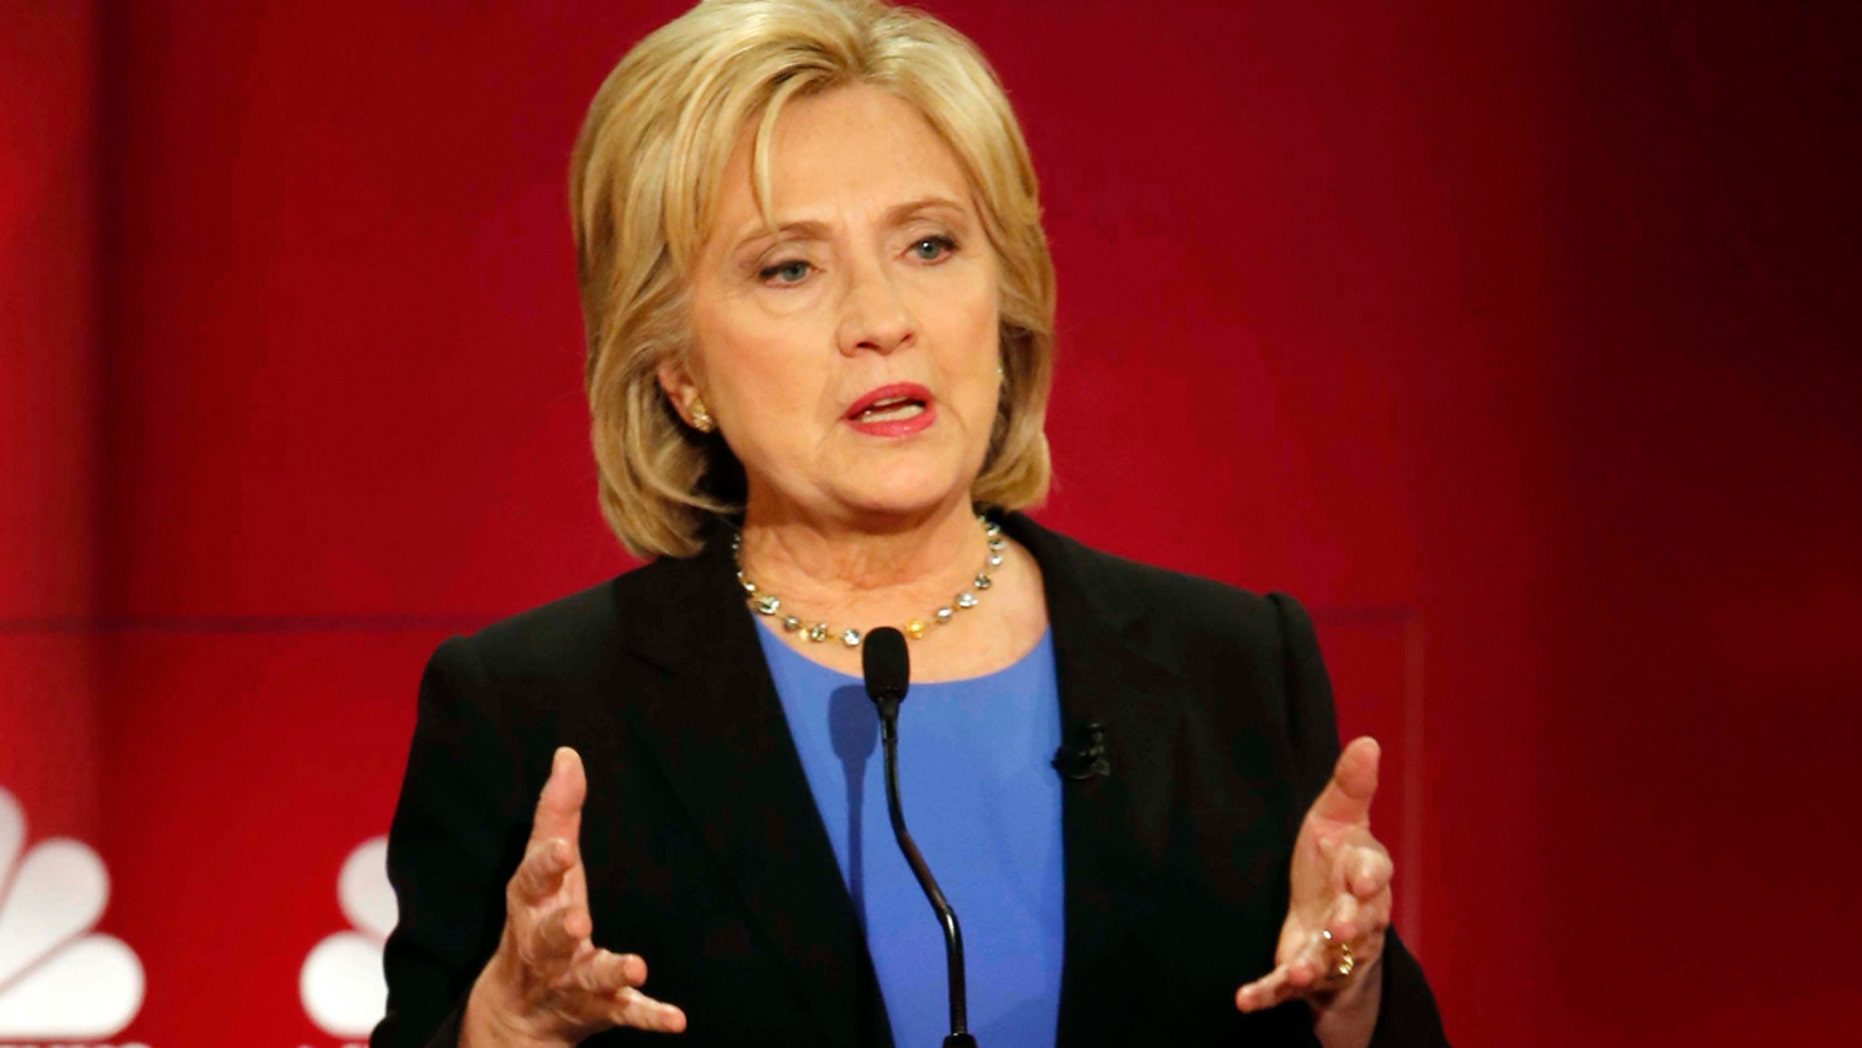 Democratic presidential candidate, Hillary Clinton speaks at the NBC, YouTube Democratic presidential debate at the Gaillard Center, Sunday, Jan. 17, 2016, in Charleston, S.C. (AP Photo/Mic Smith)